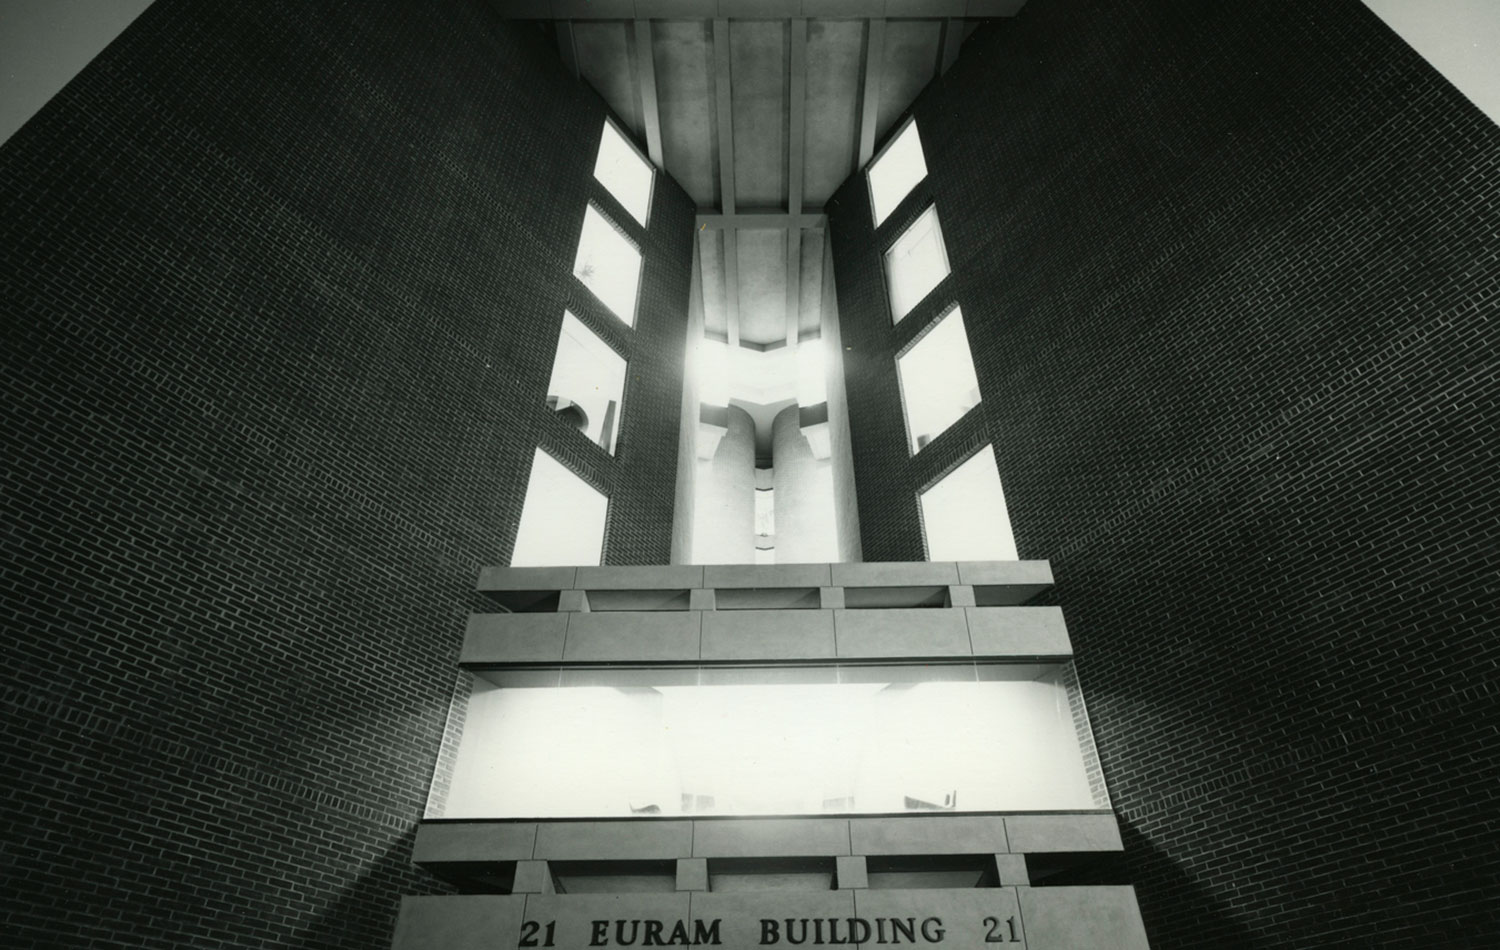 Euram Building    1972  Potomac Valley Chapter of the AIA Biennial Awards Program  1971  Board of Trade for the District of Columbia - Awards for Excellence in Architecture